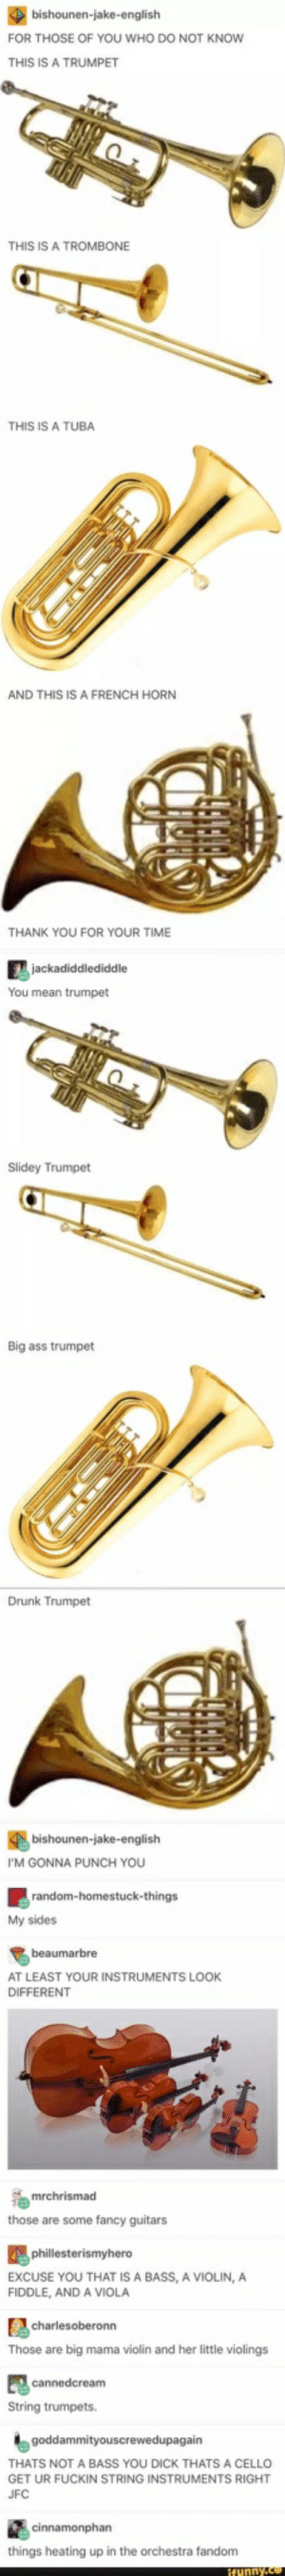 Ass, Drunk, and Thank You: FOR THOSE OF YOU WHO DO NOT KNOW  THIS IS A TRUMPET  THIS IS A TROMBONE  THIS IS A TUBA  AND THIS IS A FRENCH HORN  THANK YOU FOR YOUR TIME  You mean trumpet  Slidey Trumpet  Big ass trumpet  Drunk Trumpet  I'M GONNA PUNCH YOU  My sides  AT LEAST YOUR INSTRUMENTS LOOK  DIFFERENT  those are some fancy guitars  EXCUSE YOU THAT IS A BASS, A VIOLIN, A  FIDDLE, AND A VIOLA  Those are big mama violin and her little violings  String trumpets.  THATS NOT A BASS YOU DICK THATS A CELLO  GET UR FUCKIN STRING INSTRUMENTS RIGHT  JFC  things heating up in the orchestra fandonm